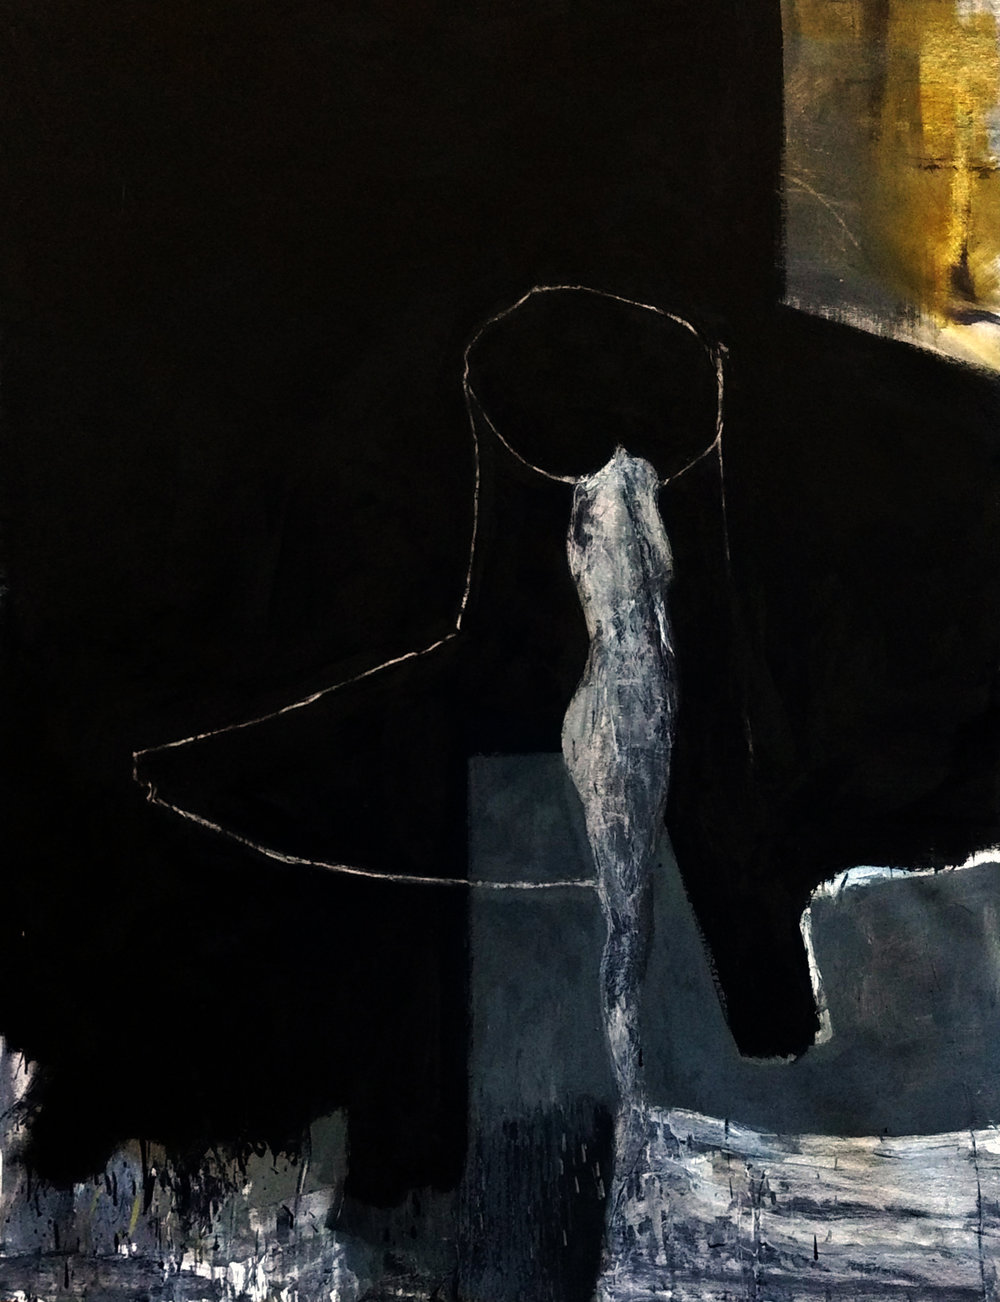 Maniquí de mujer,    2017       Oil on canvas  130 x 100 cm